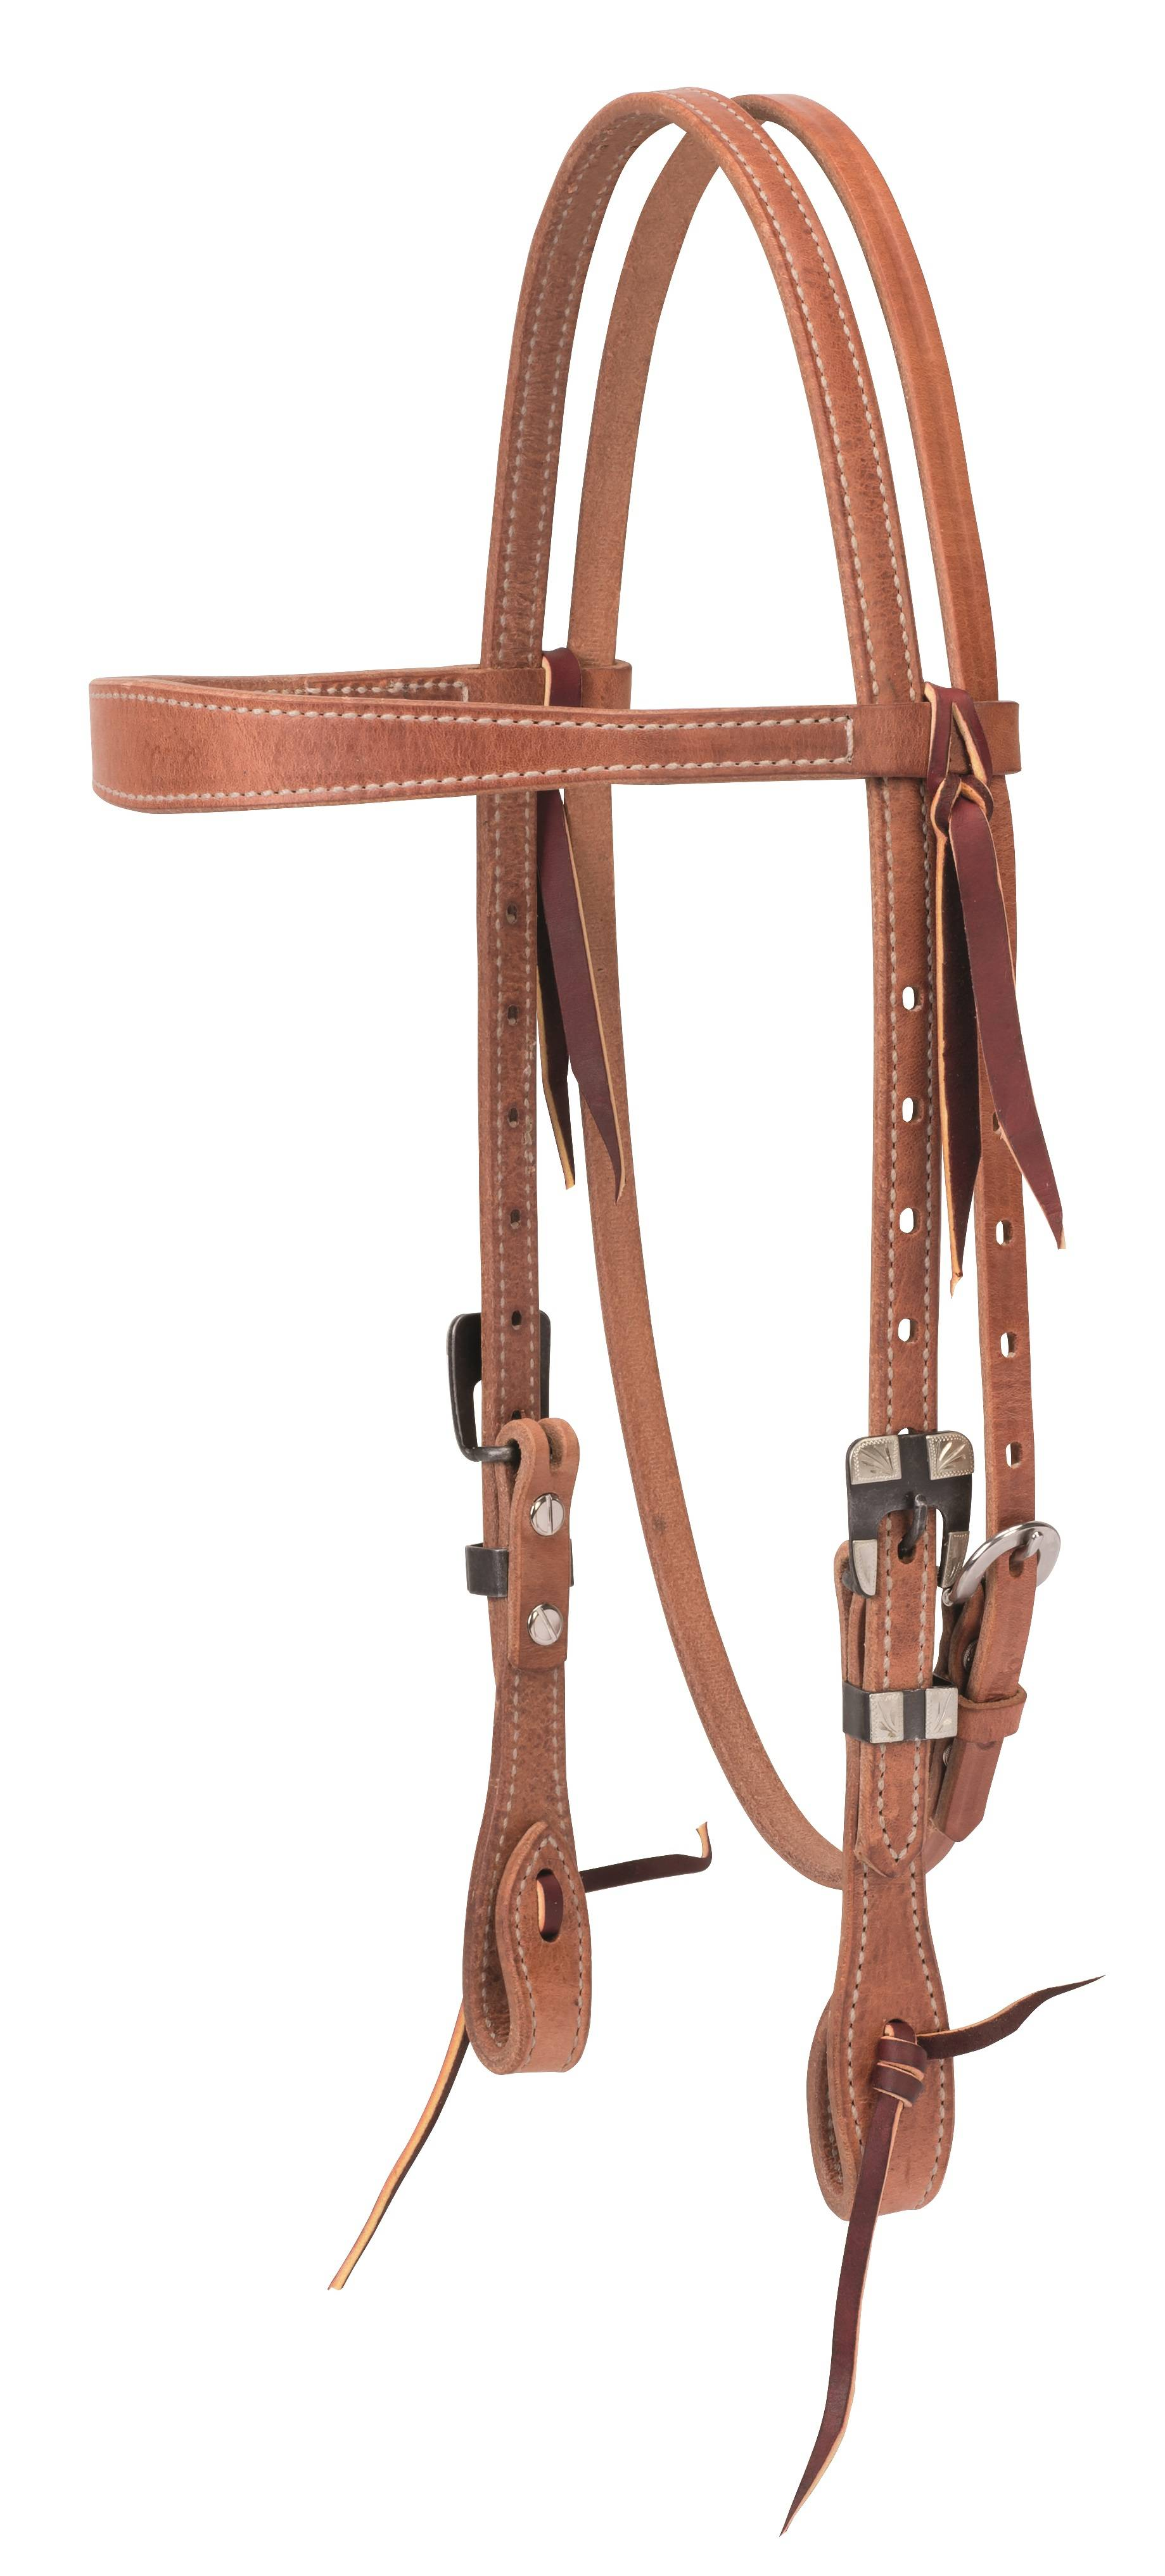 Weaver Prem Harness Leather Slim Cowboy Browband Headstall - Buff Black Hardware